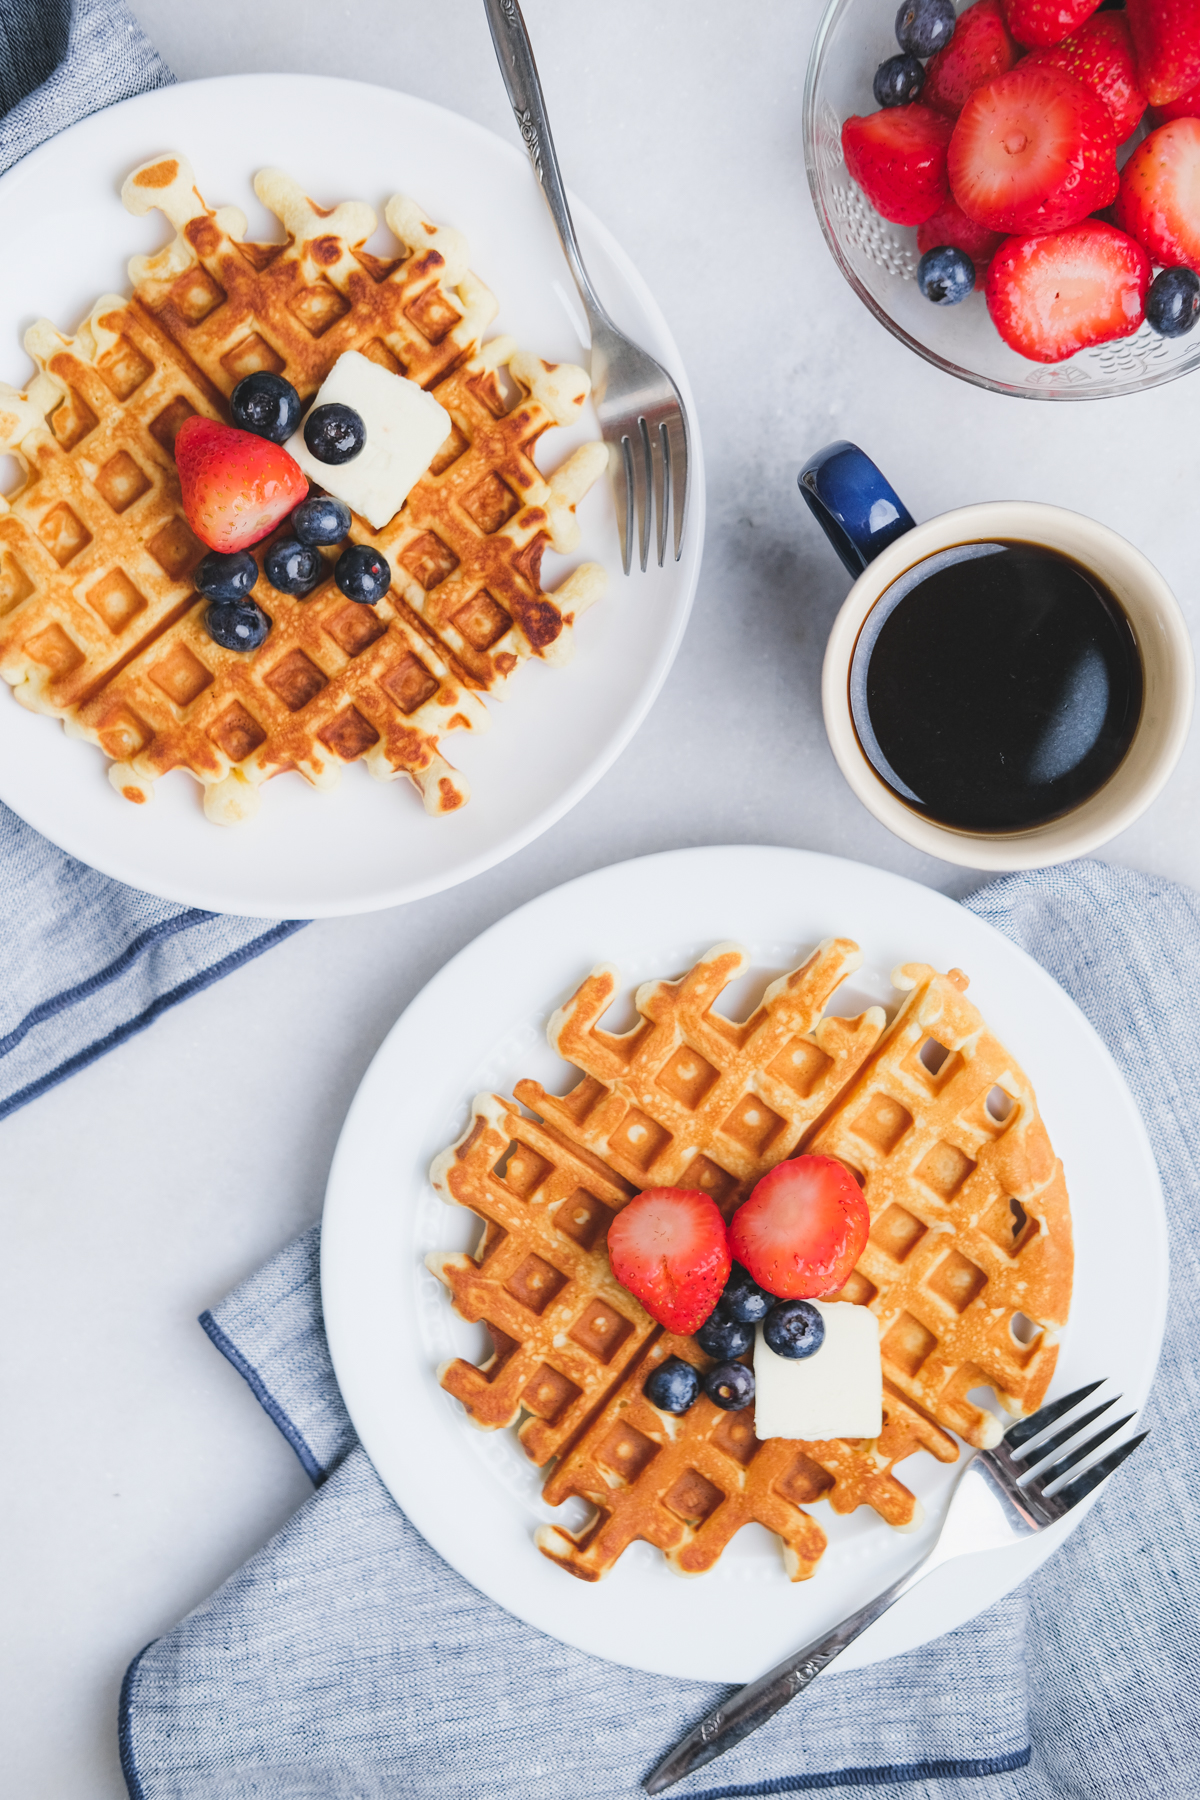 old fashioned waffles with berries and butter on a breakfast table